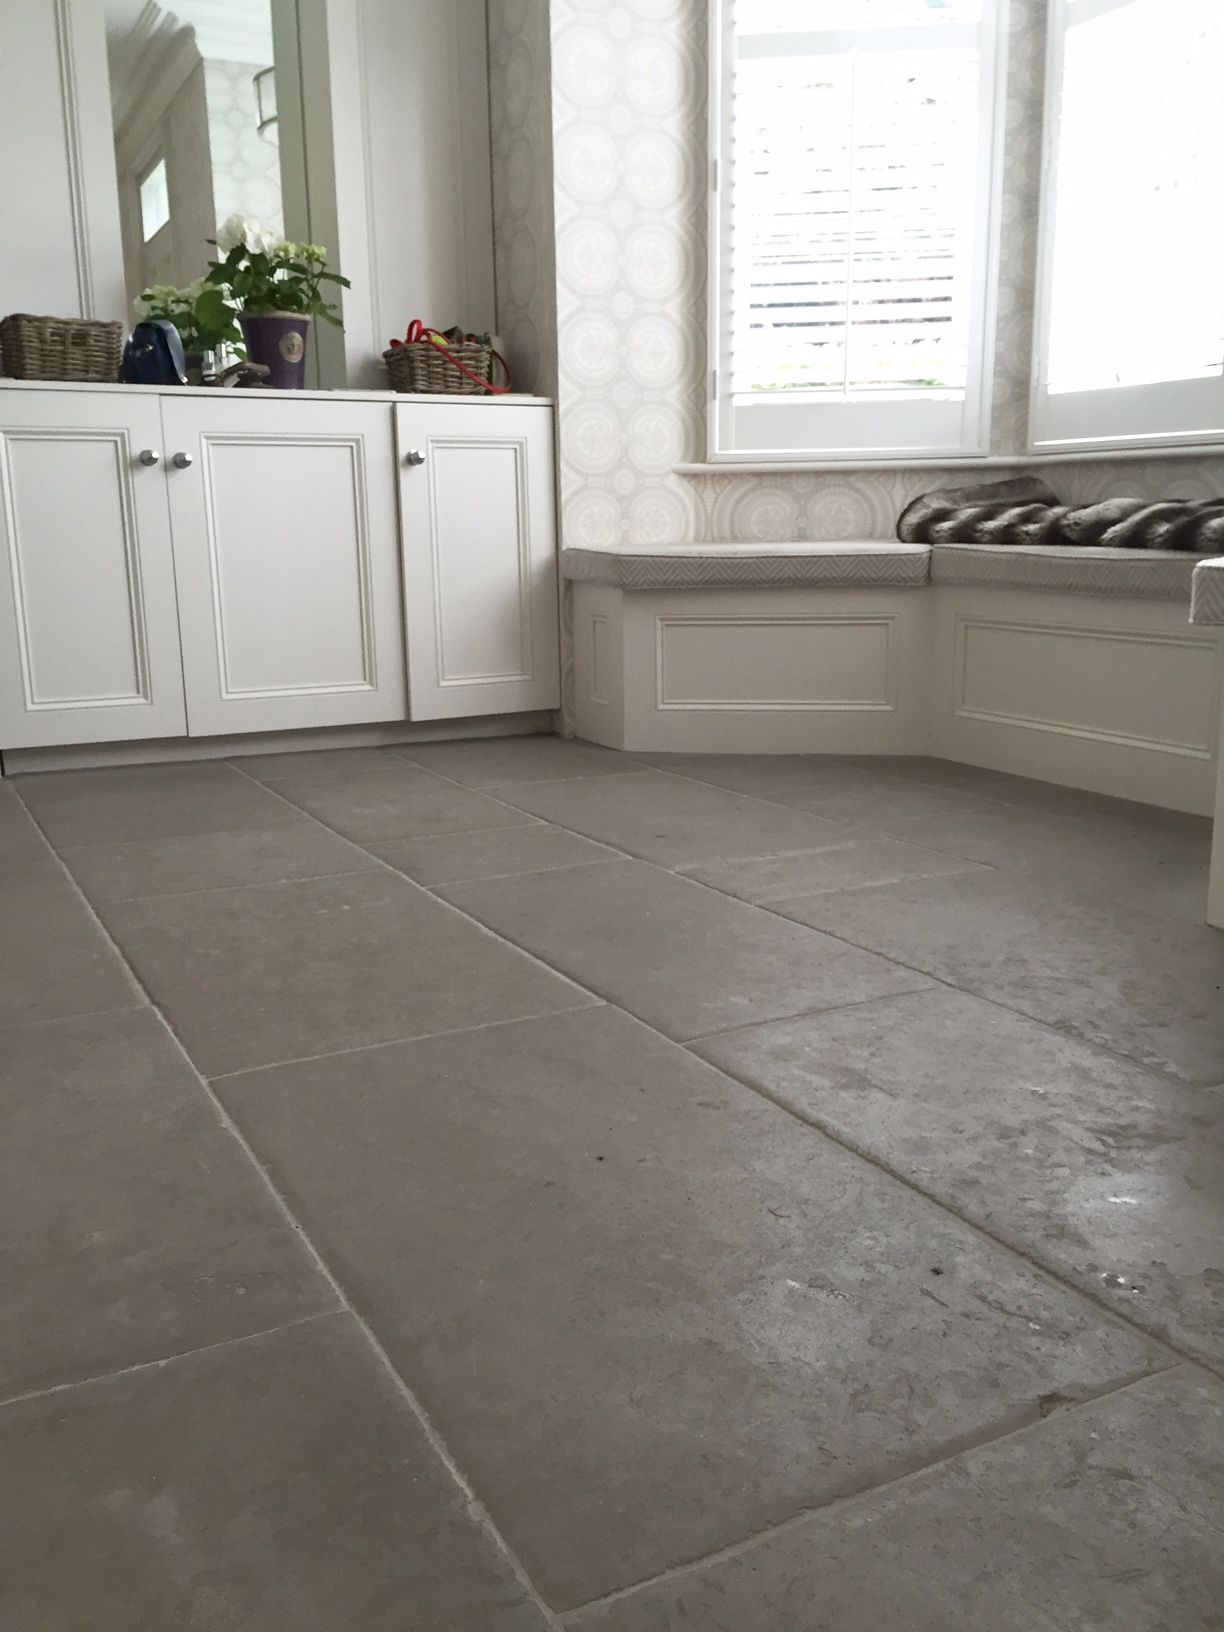 Heated Kitchen Floor Antiqued Kensington Grey Limestone Flooring Http Www